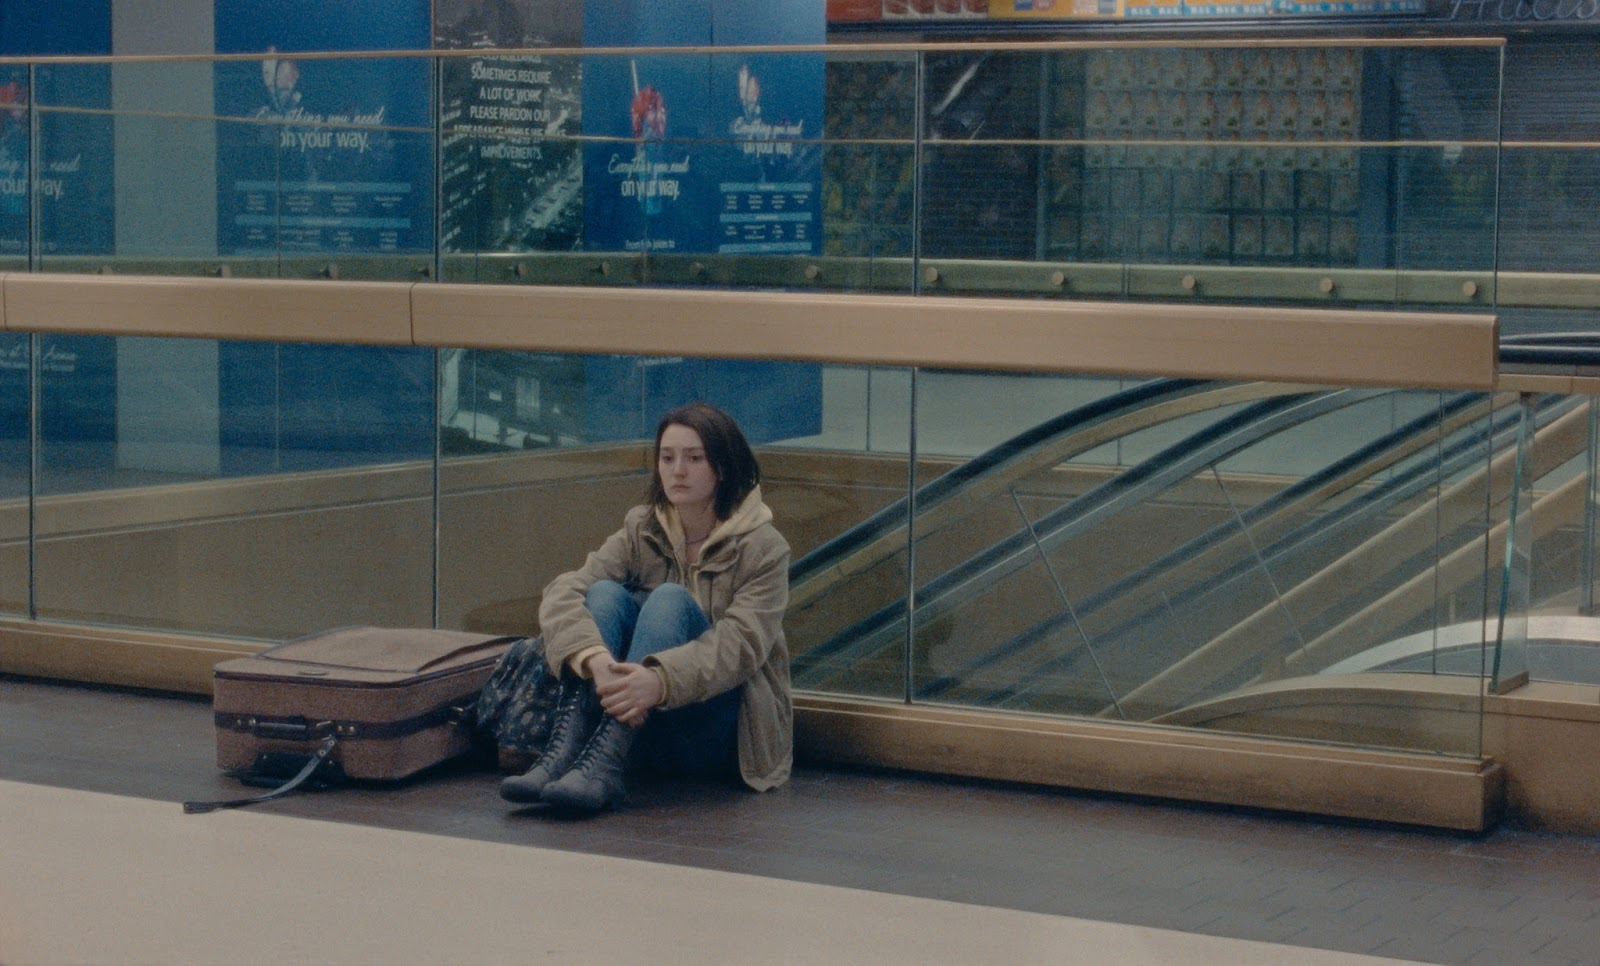 A distraught Autumn sits alone in a bus terminal next to her luggage.